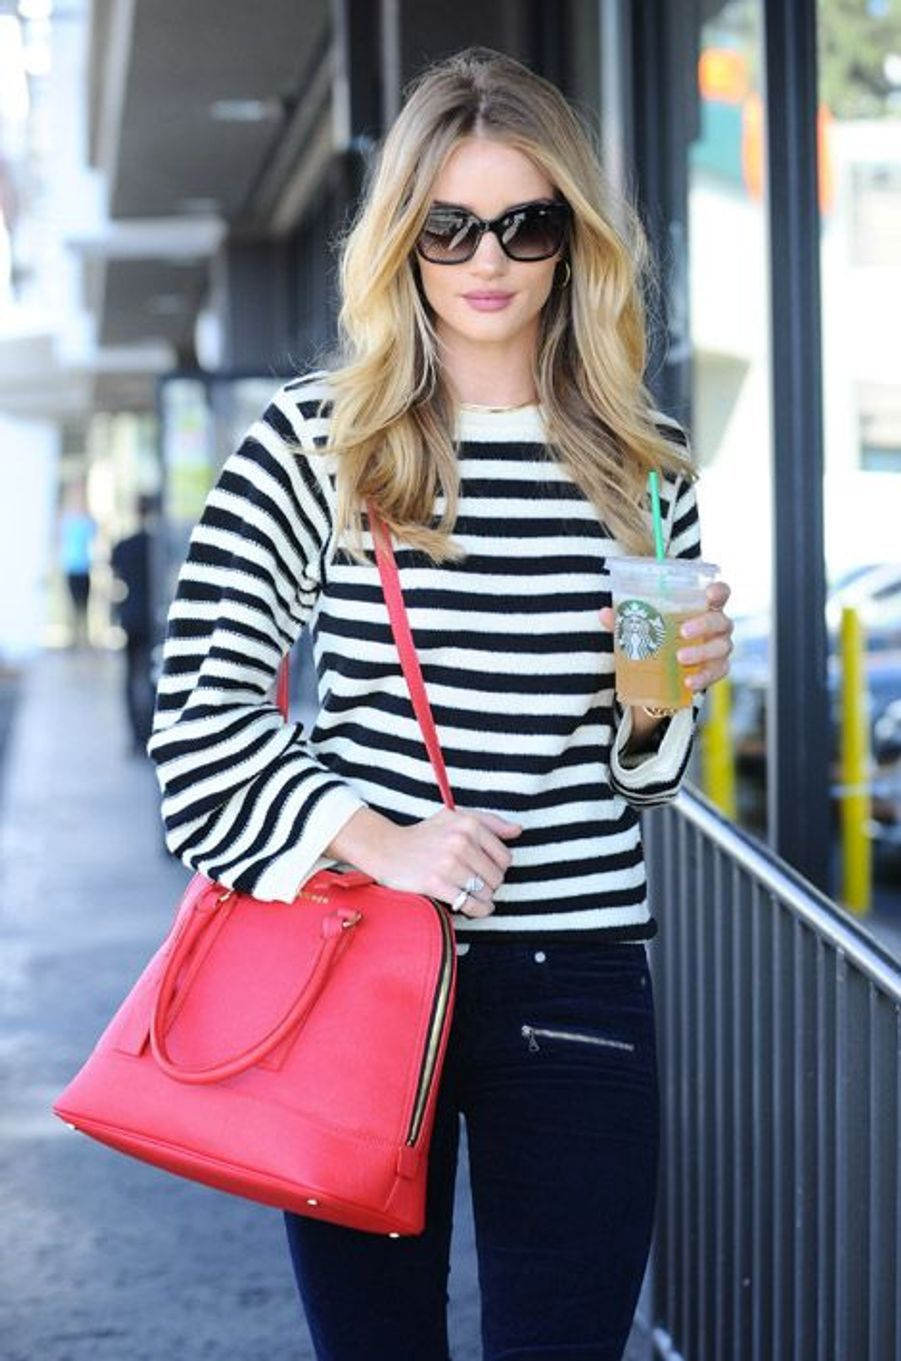 Le mannequin Rosie Huntington-Whiteley à Los Angeles, le 30 octobre 2014